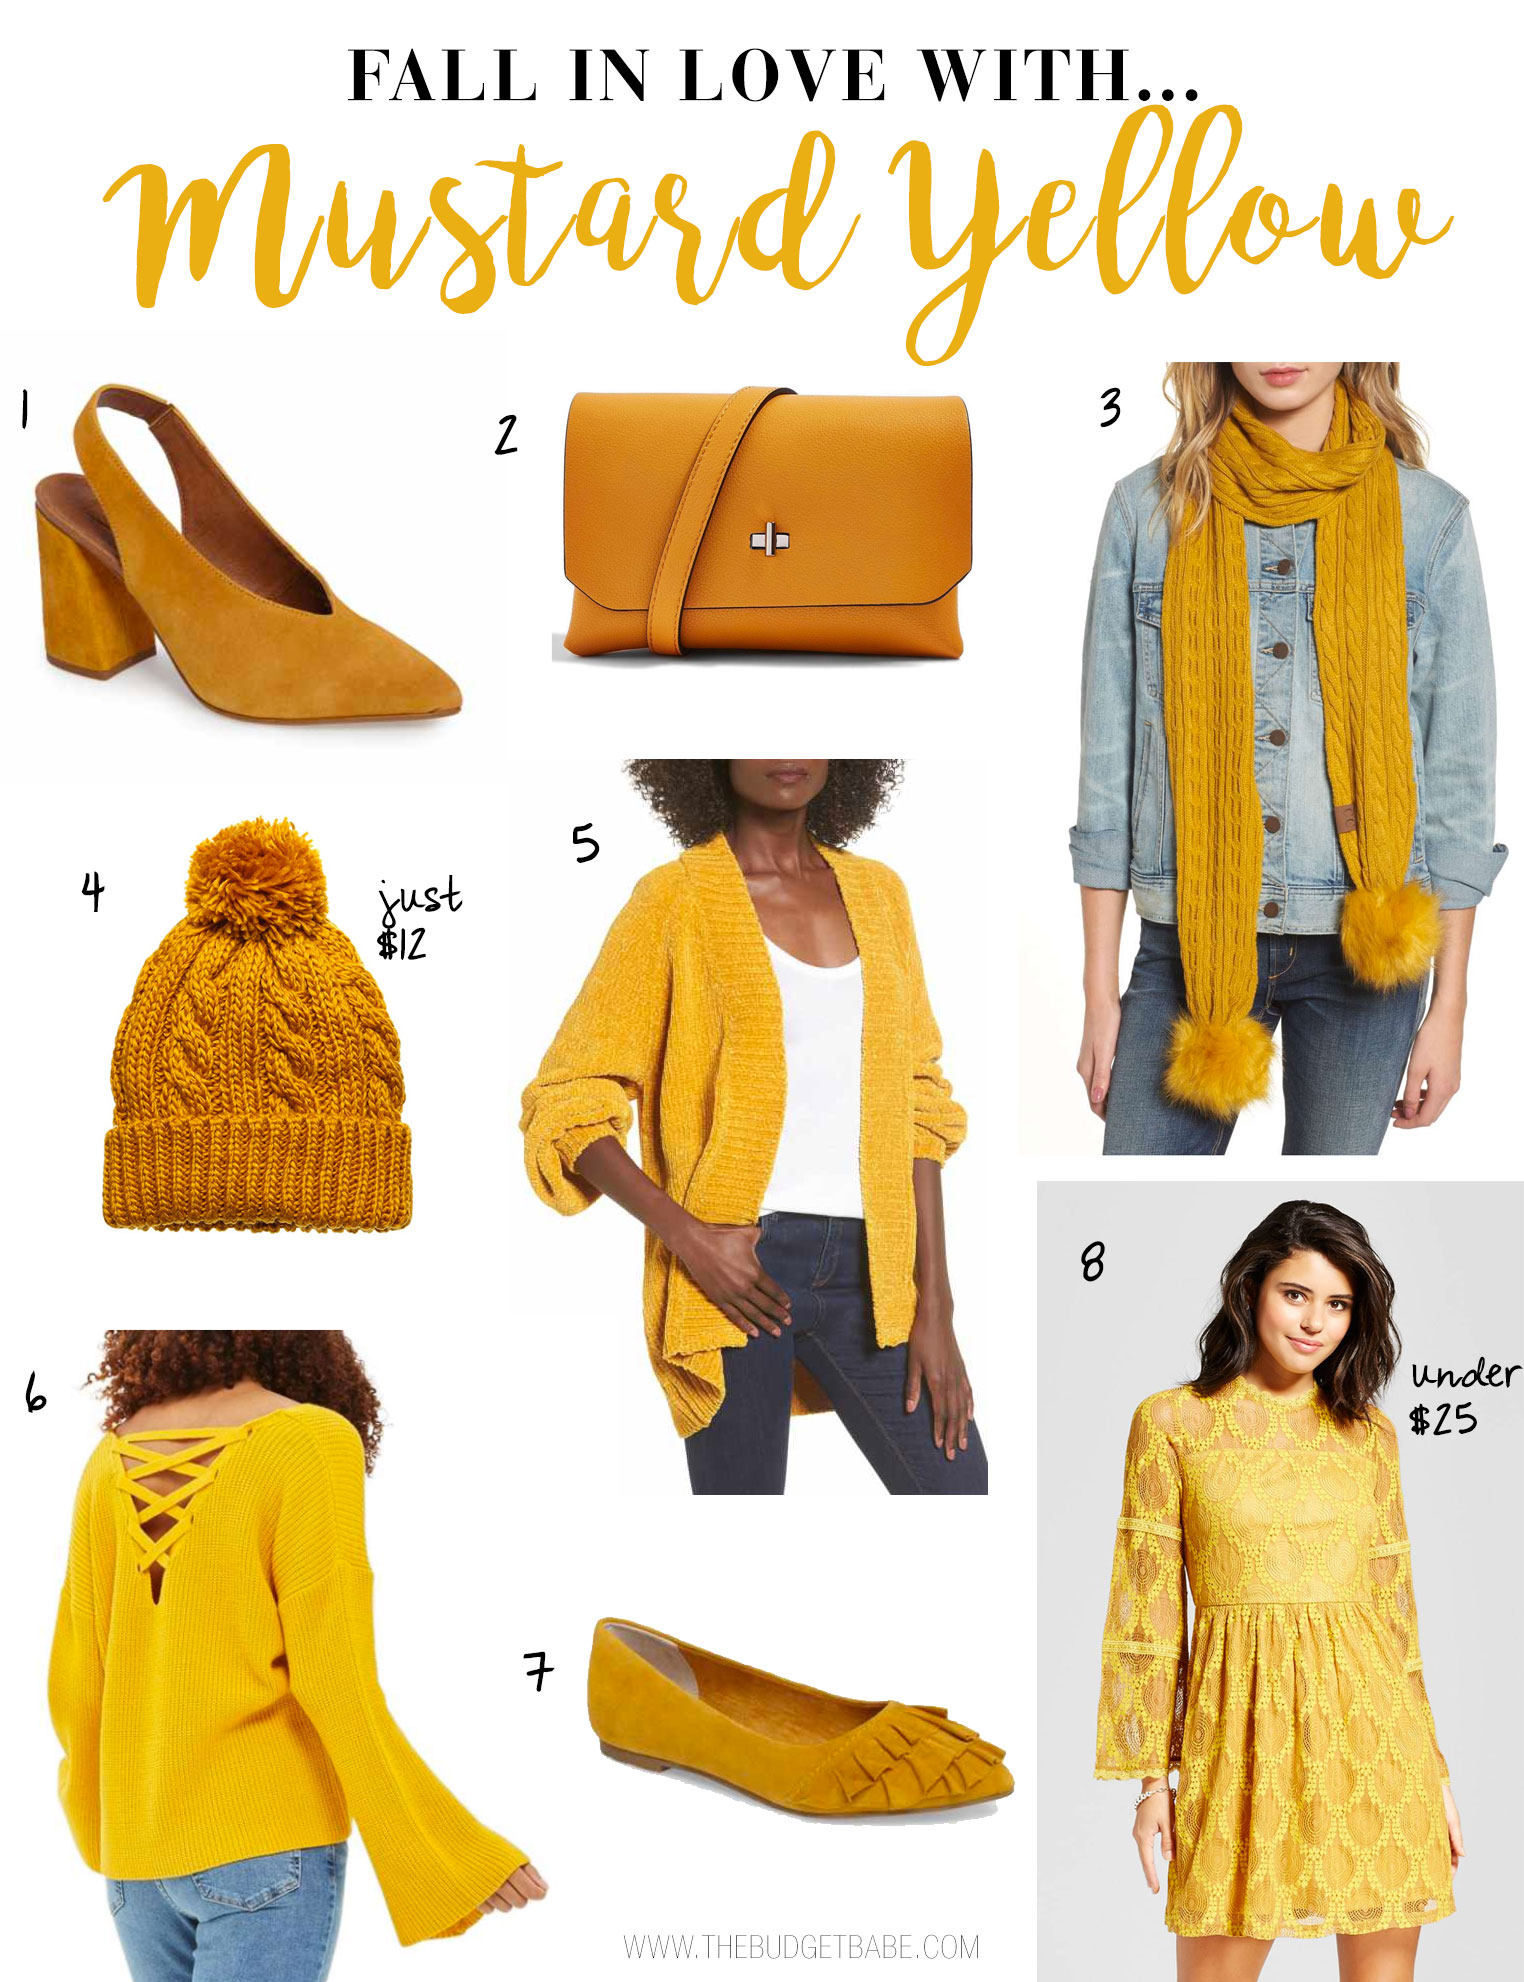 Mustard yellow is the perfect hue to wear for fall 2017.